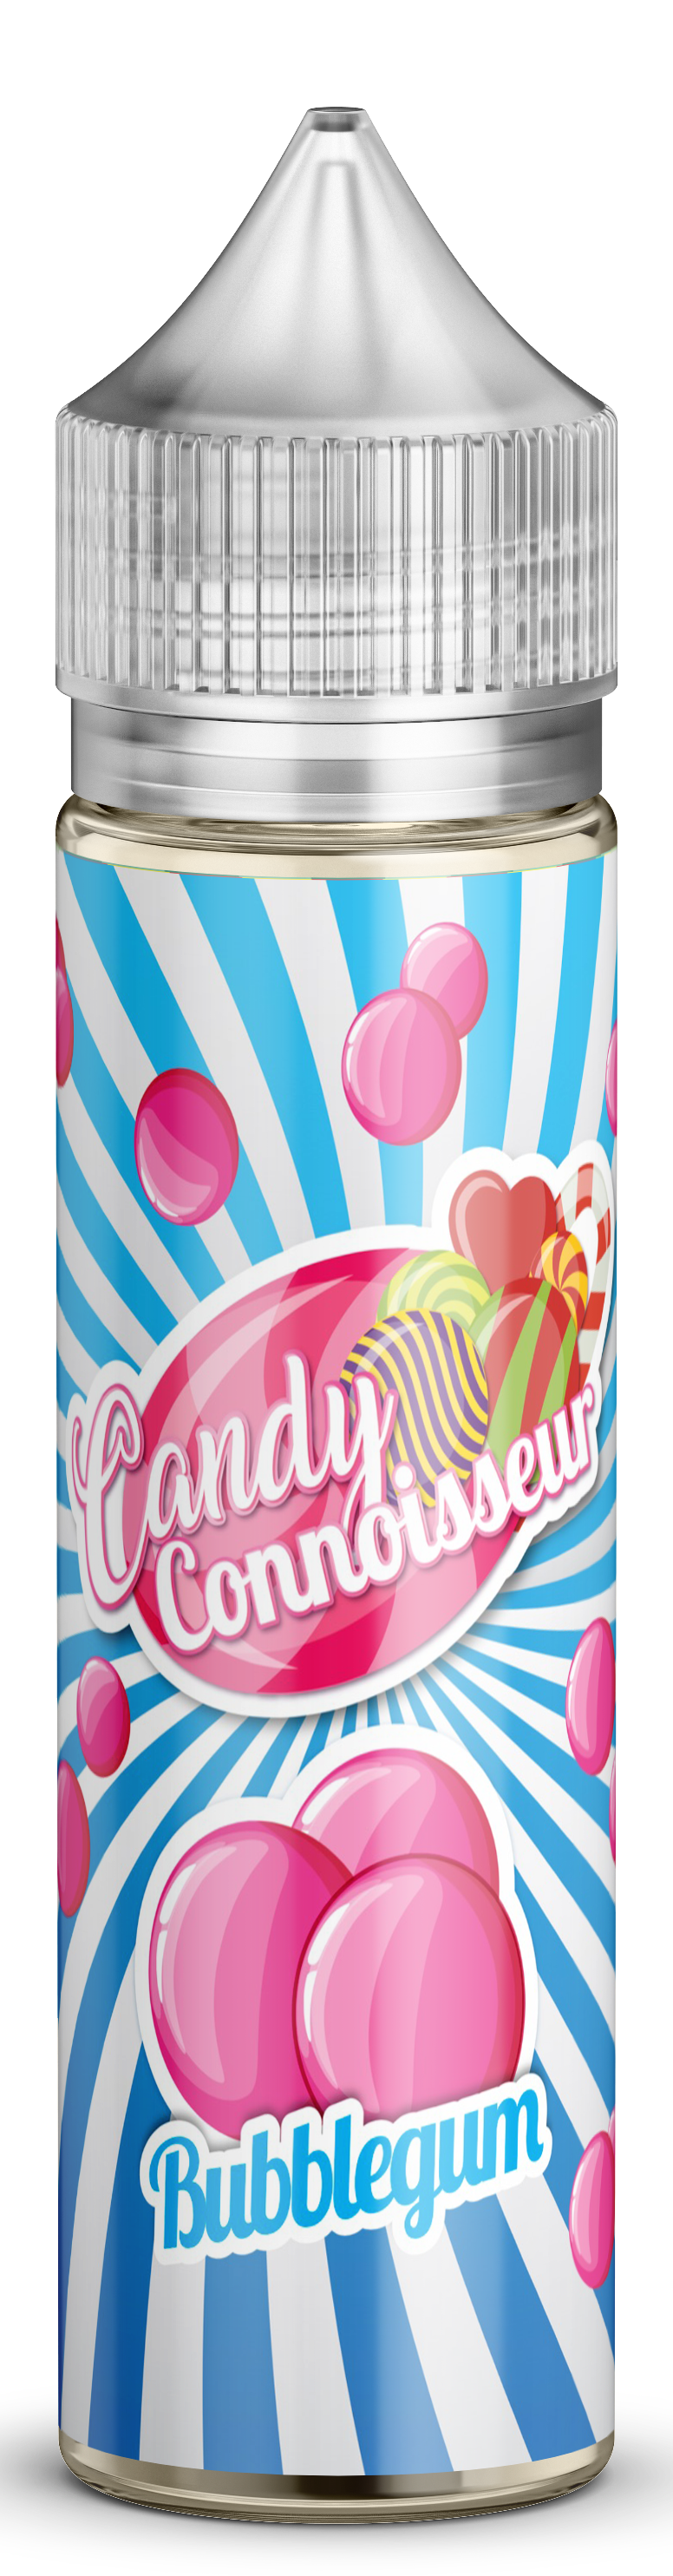 Bubblegum - Candy 50ml